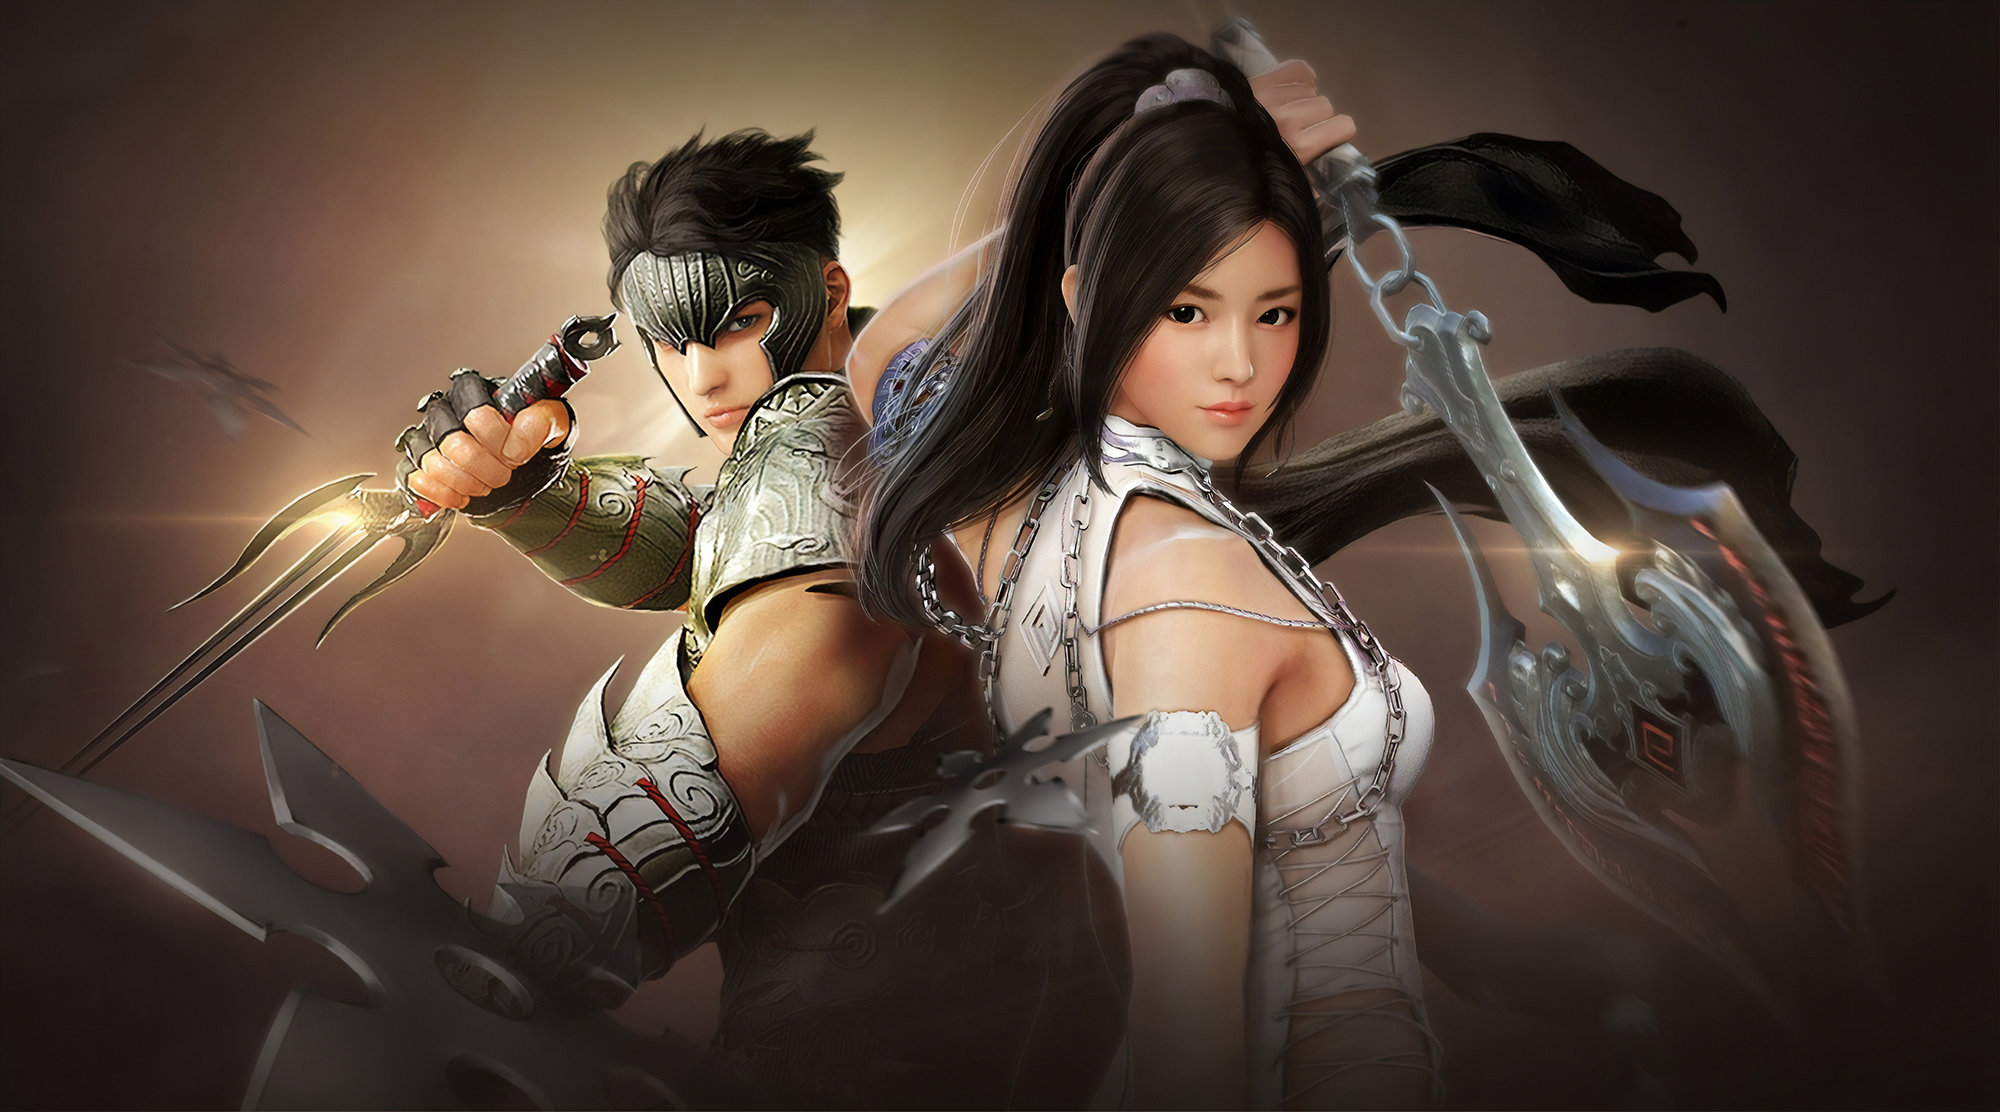 2560x1440 Black Desert Online 1440p Resolution Hd 4k Wallpapers Images Backgrounds Photos And Pictures